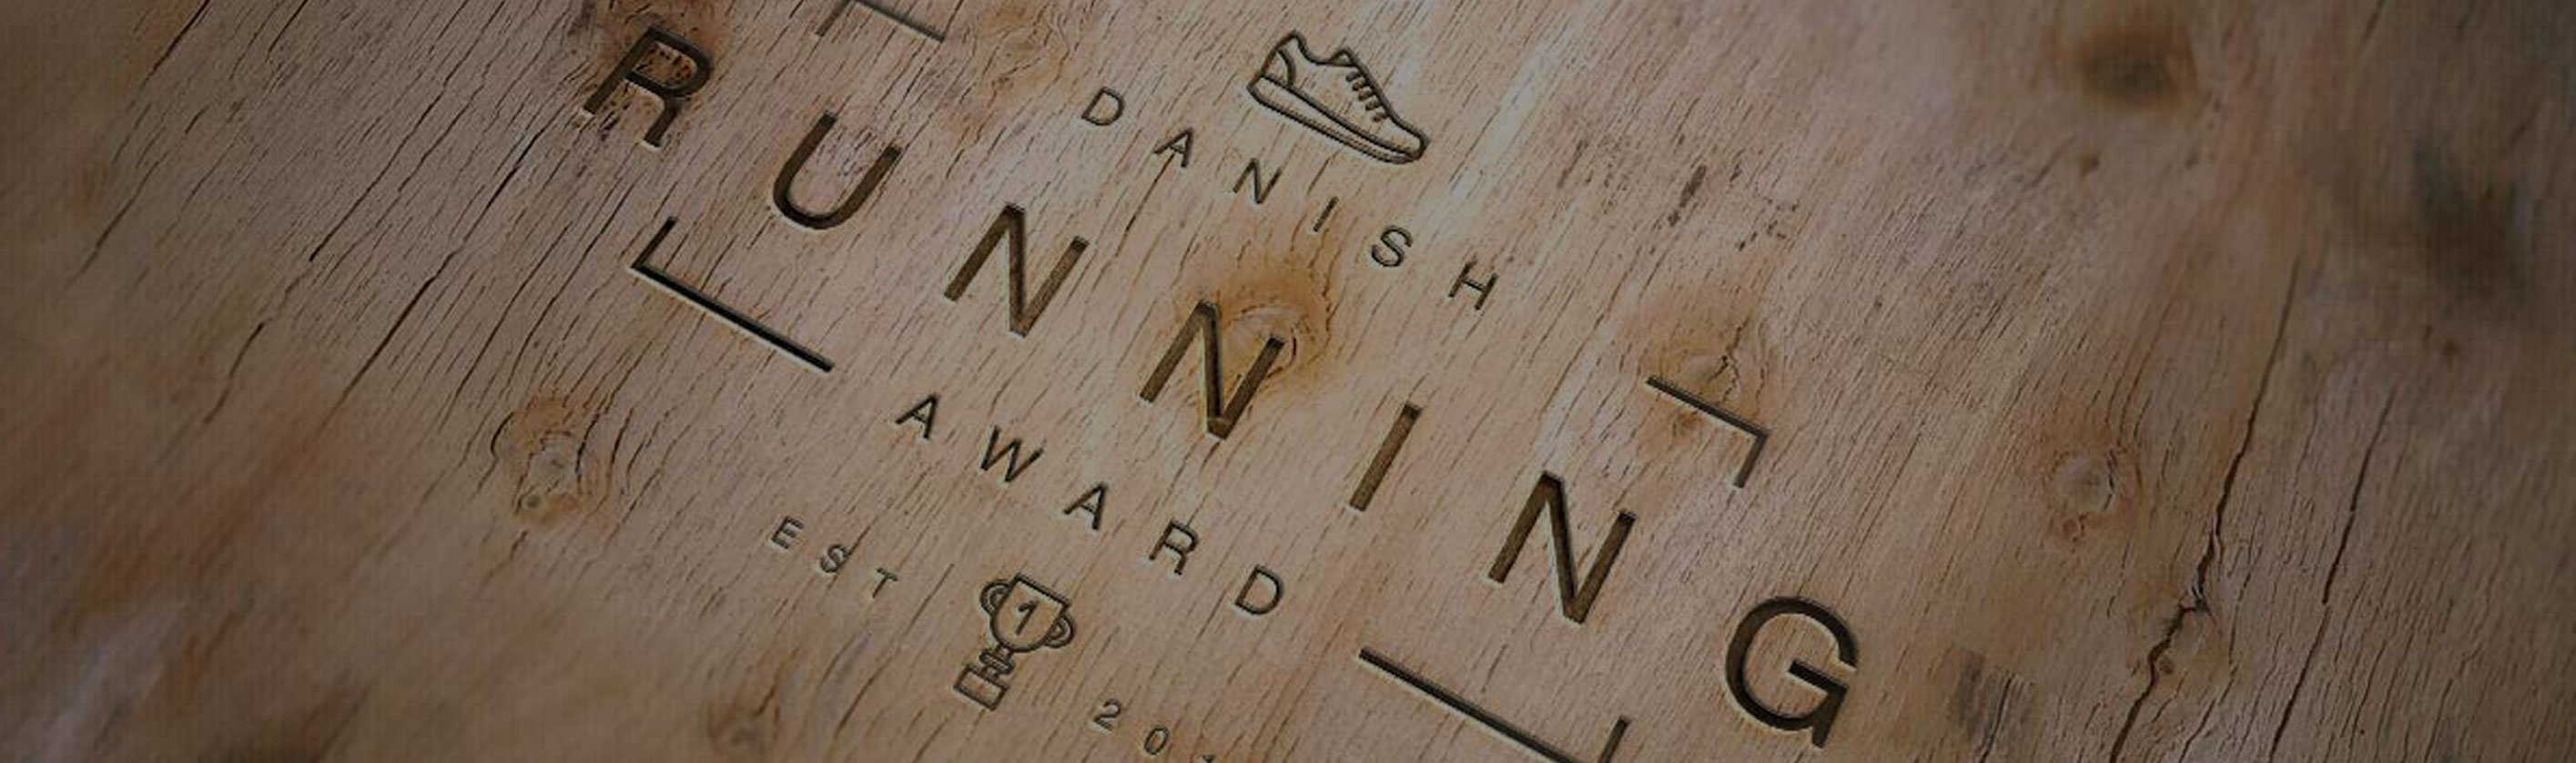 DANISH RUNNING AWARD 2017 (UDSOLGT)